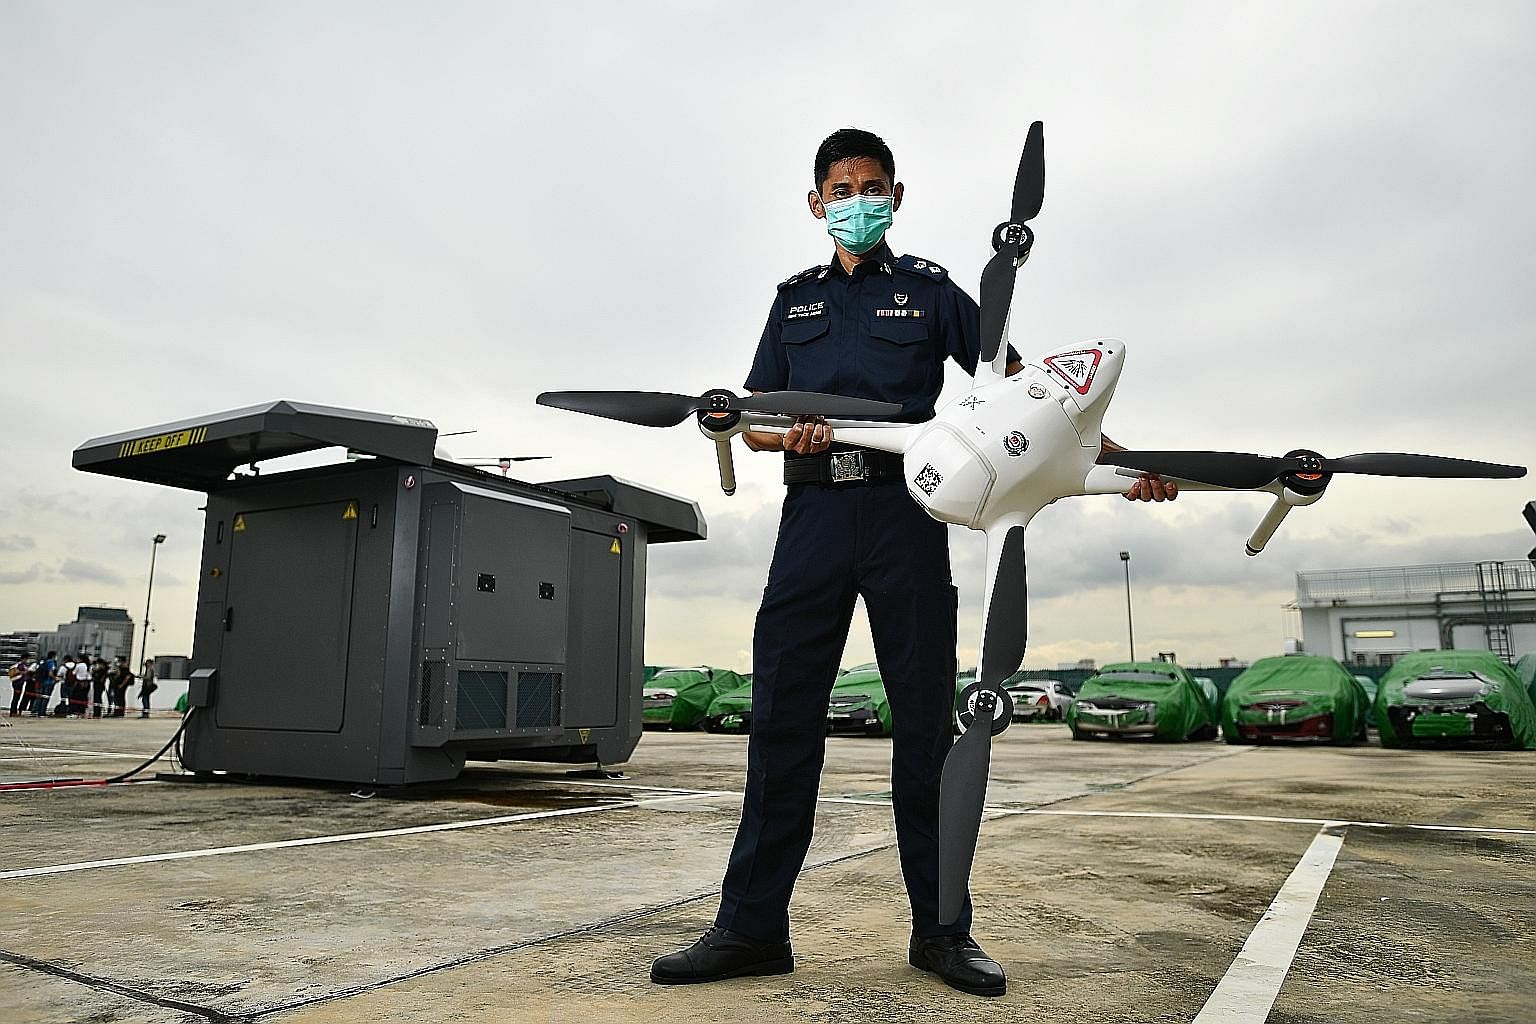 Deputy Superintendent of Police Sum Teck Meng, who is in charge of the Home Team Unmanned Aerial Vehicles unit, with the drone and drone box last Wednesday. Two such drone boxes are on trial and each drone is about 1.79m wide and weighs about 10kg. H